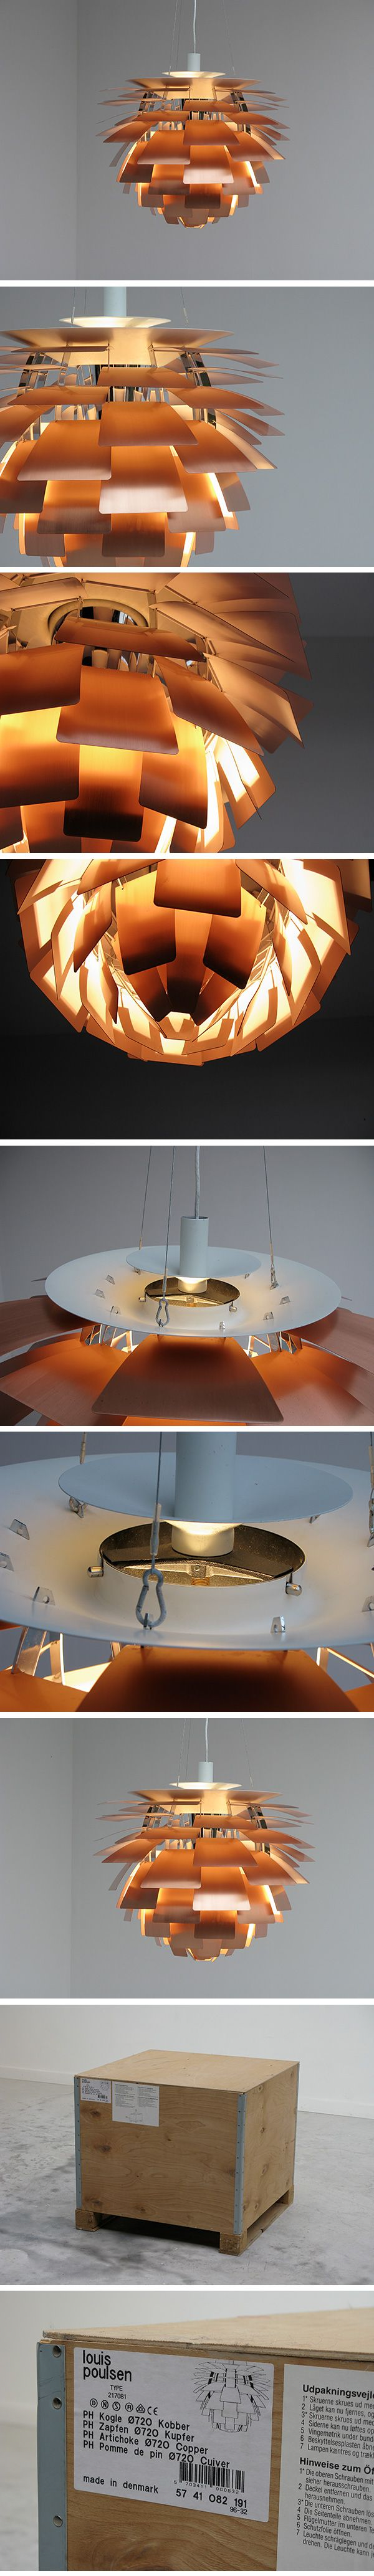 Installation Of The Artichoke Lamp By Louis Poulsen (Copper) Design Lampen,  Designklassiker,